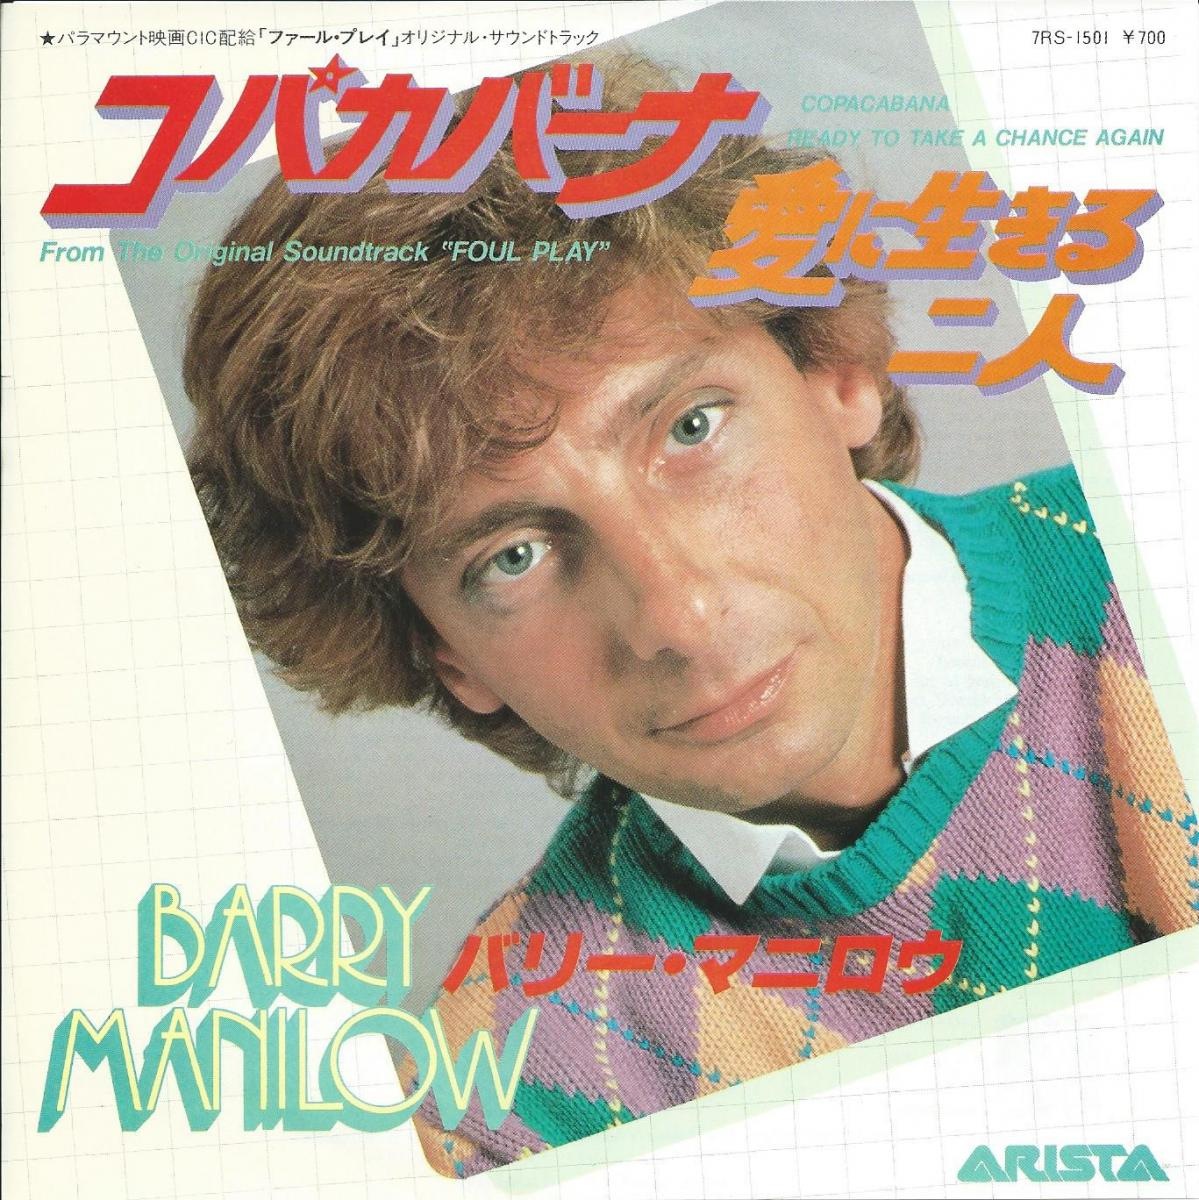 Barry Manilow-Copacabana02.jpg